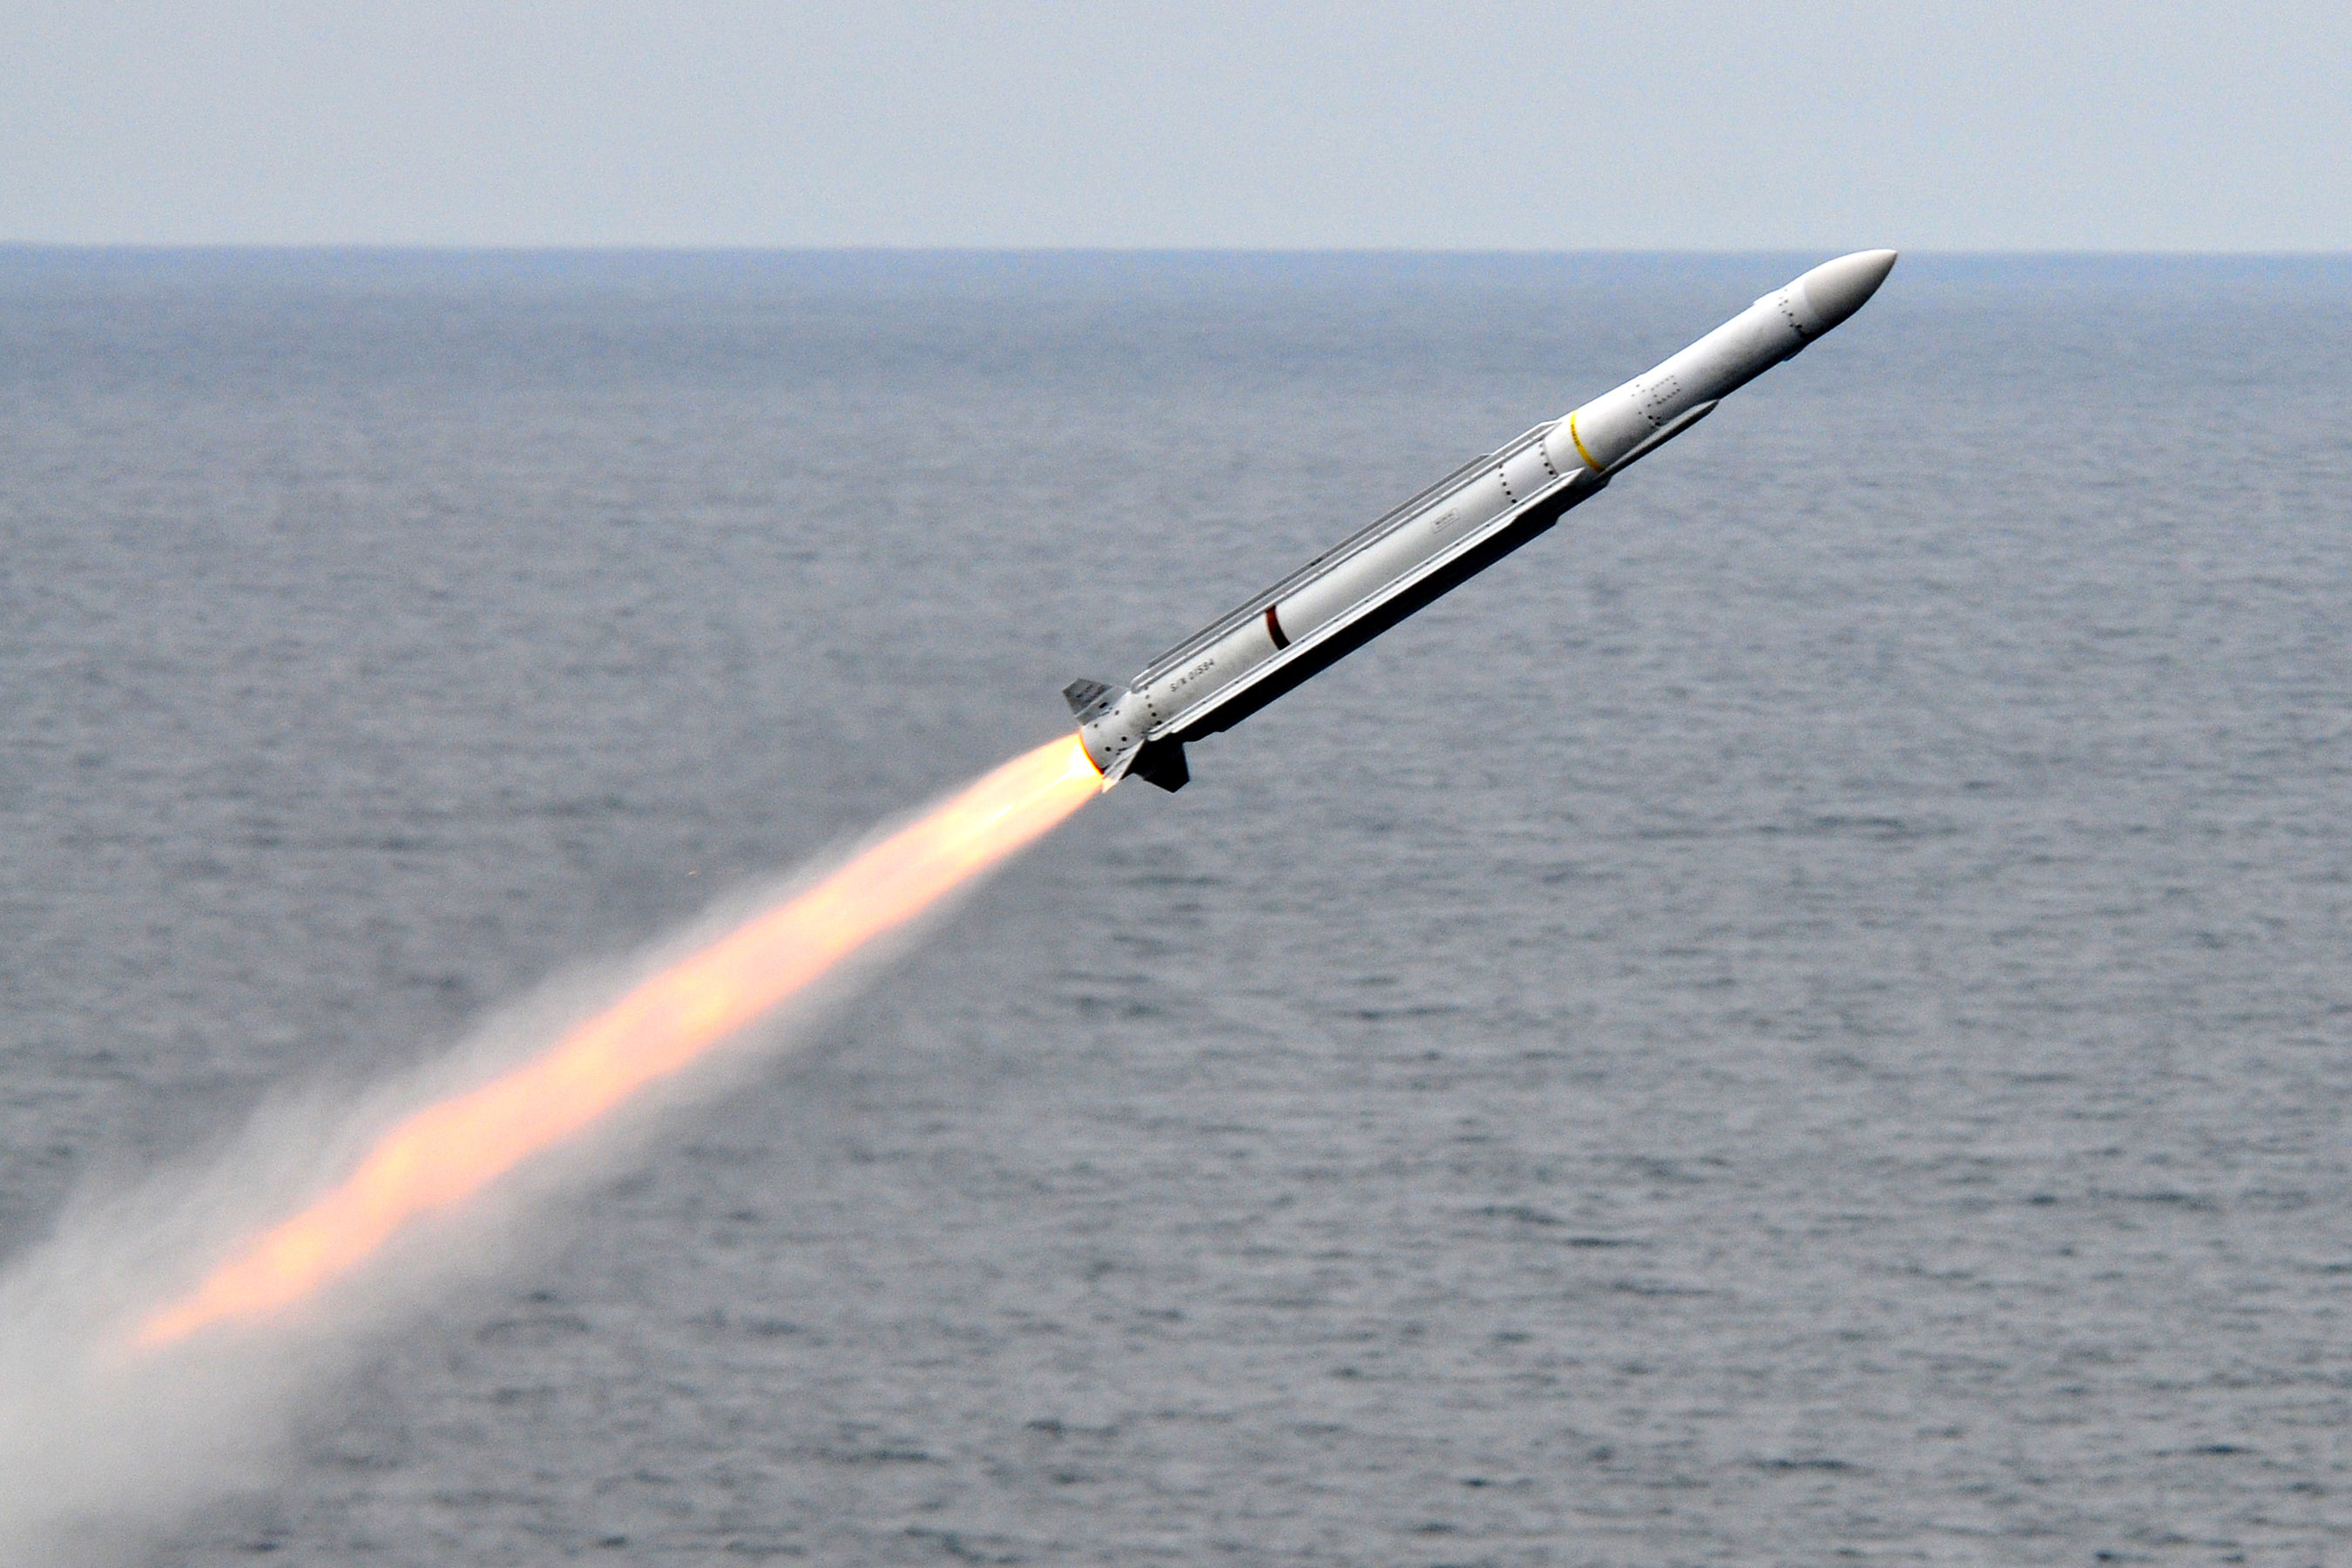 RIM-162_launched_from_USS_Carl_Vinson_(C